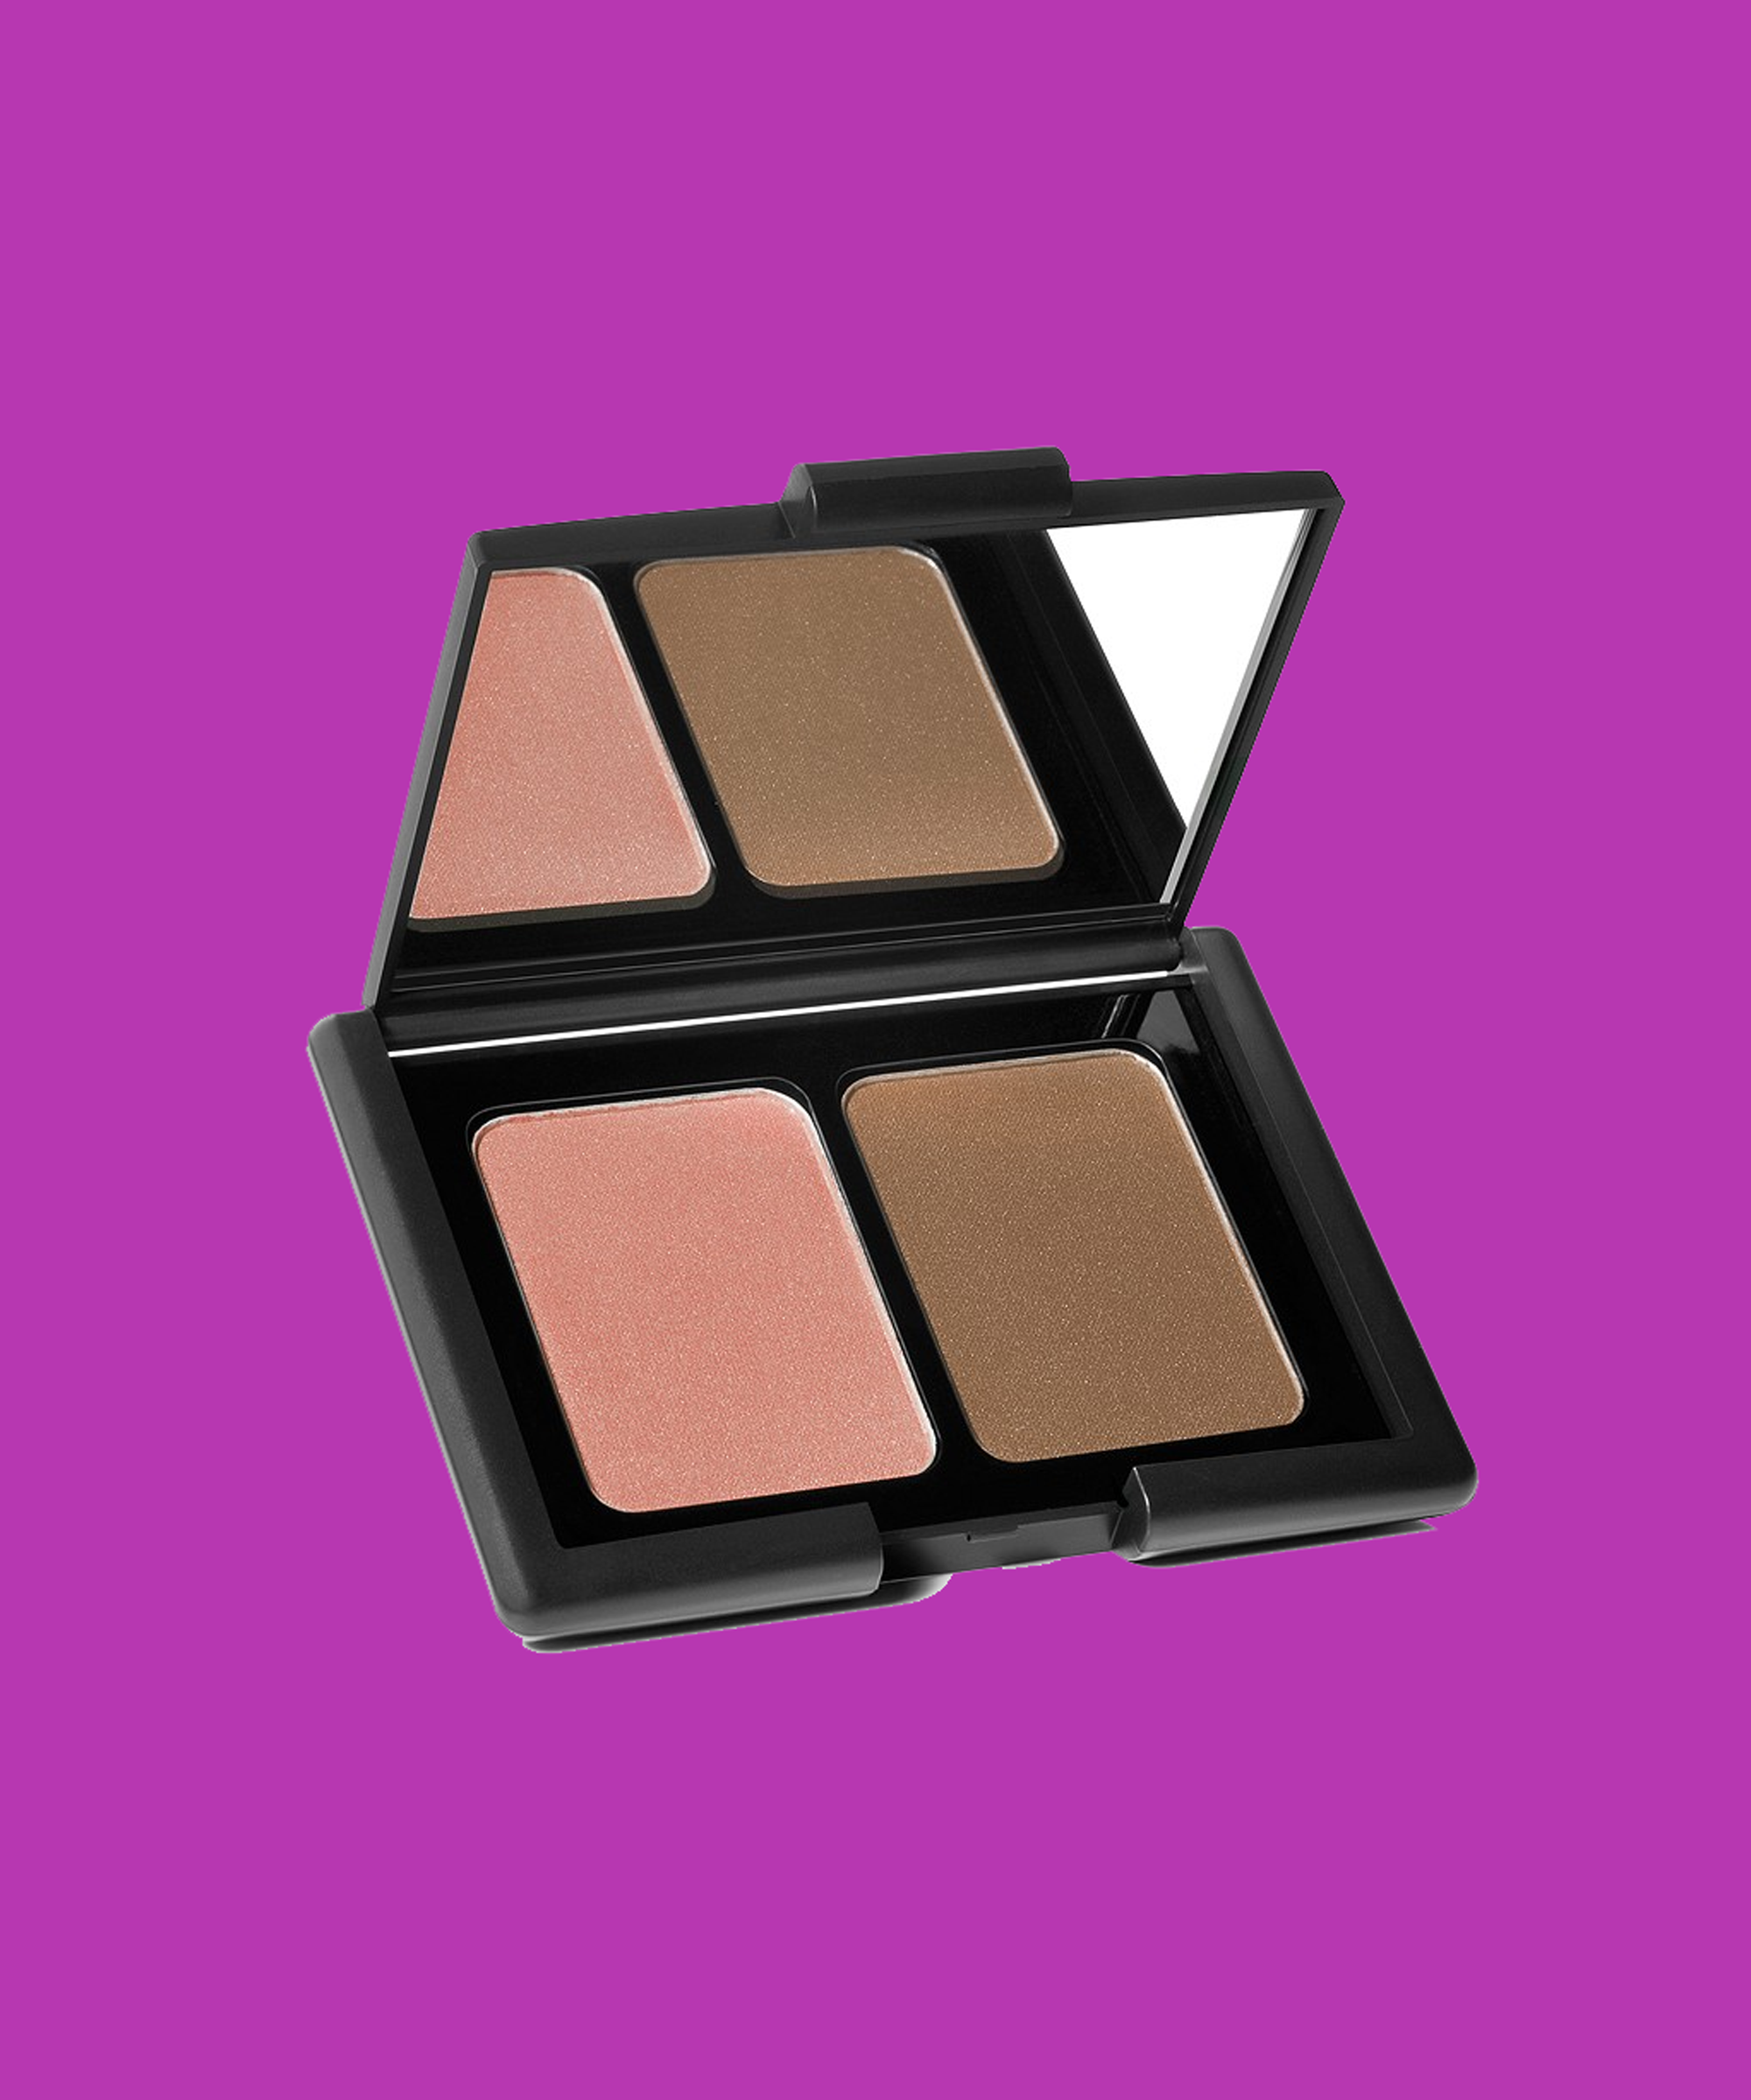 Top Makeup S In Los AngelesMakeup Cles By Chic Studios In Nyc And La